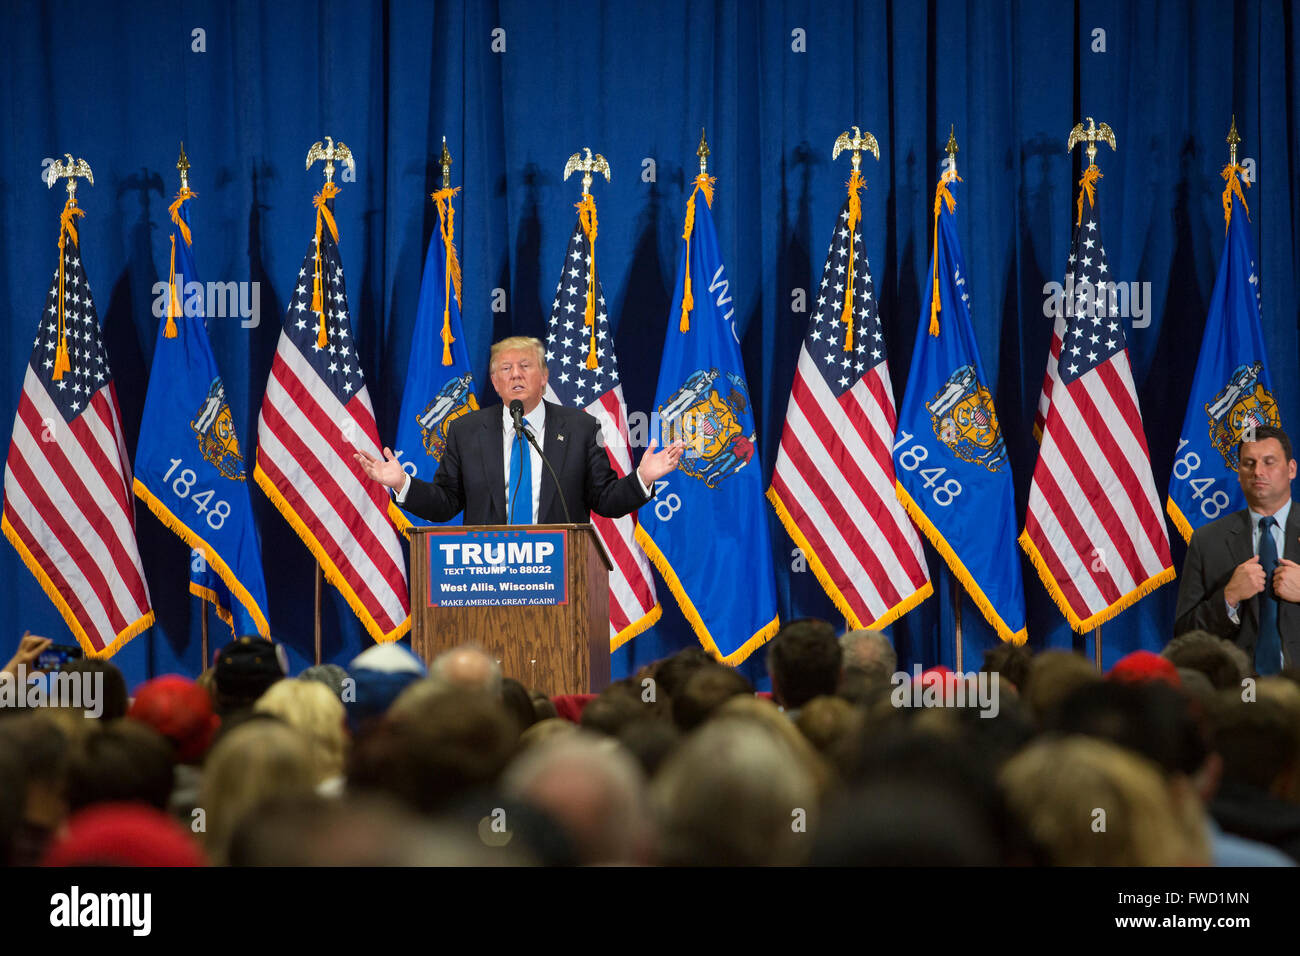 West Allis, Wisconsin USA - 3 April 2016 - Donald Trump campaigns for the Republican presidential nomination. Credit: - Stock Image